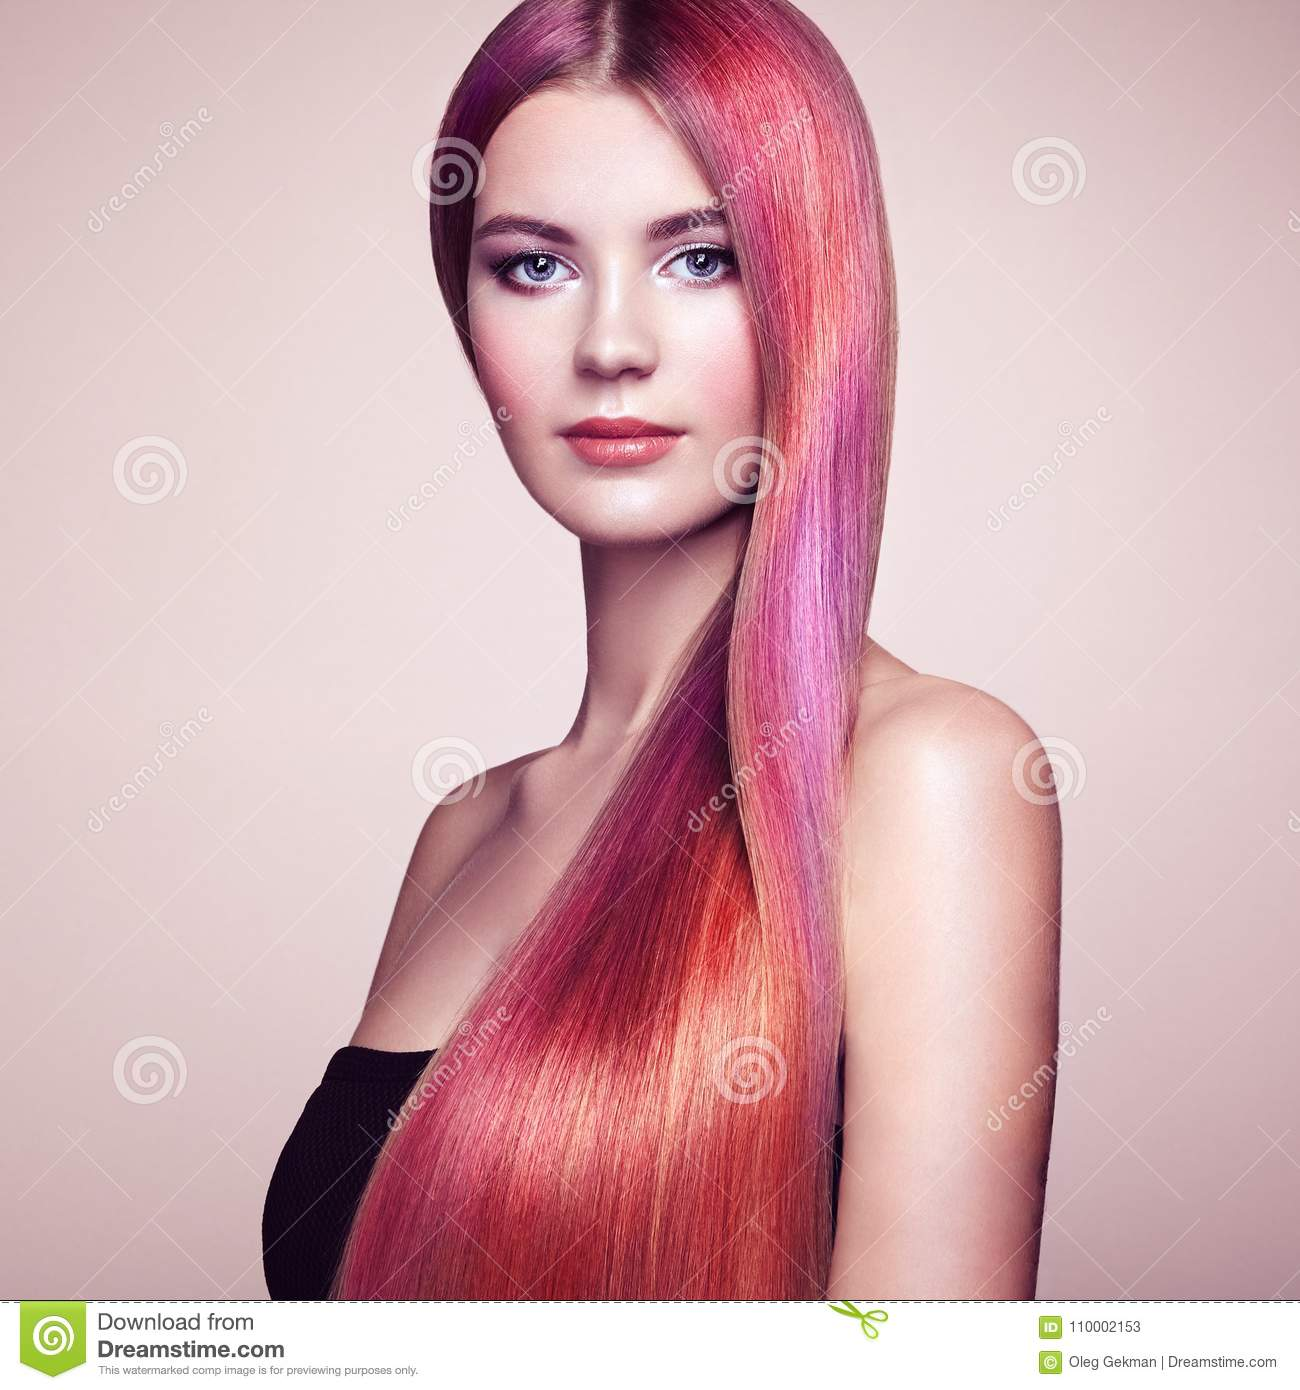 Beauty Fashion Model Girl With Colorful Dyed Hair Stock Image ...